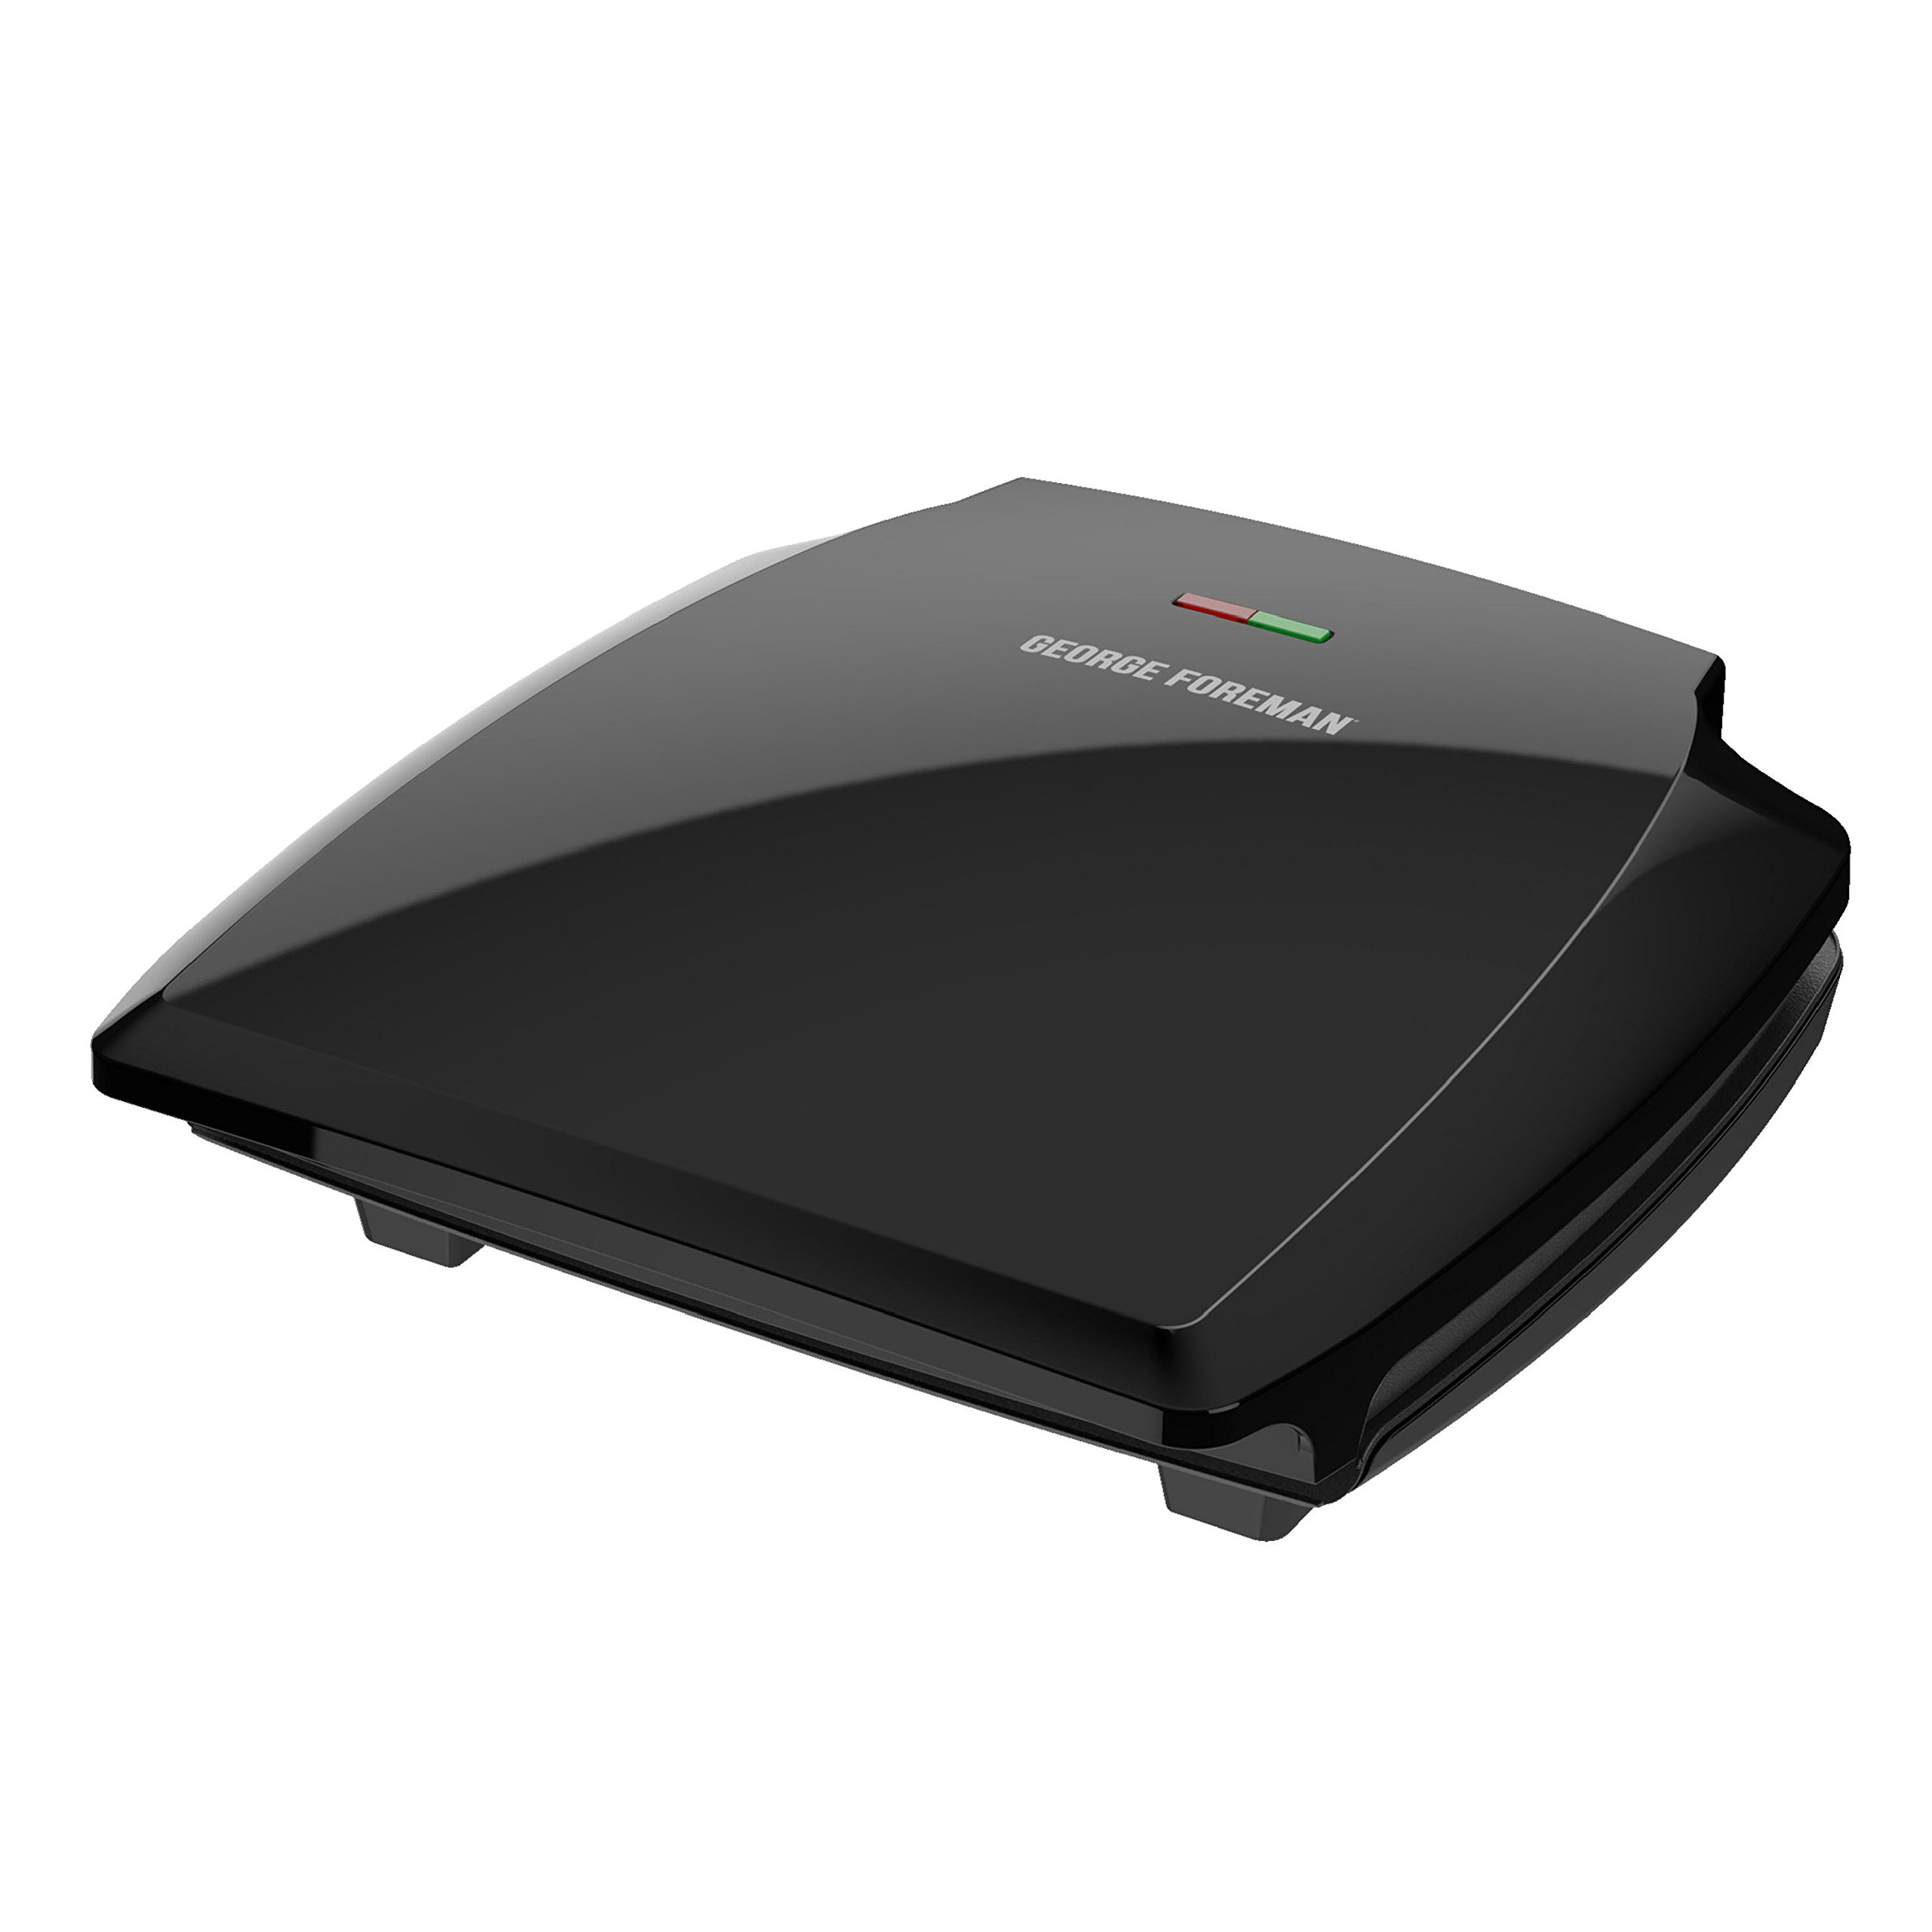 George Foreman 8-Serving Classic Plate Grill and Panini Press, Black, GR380FB